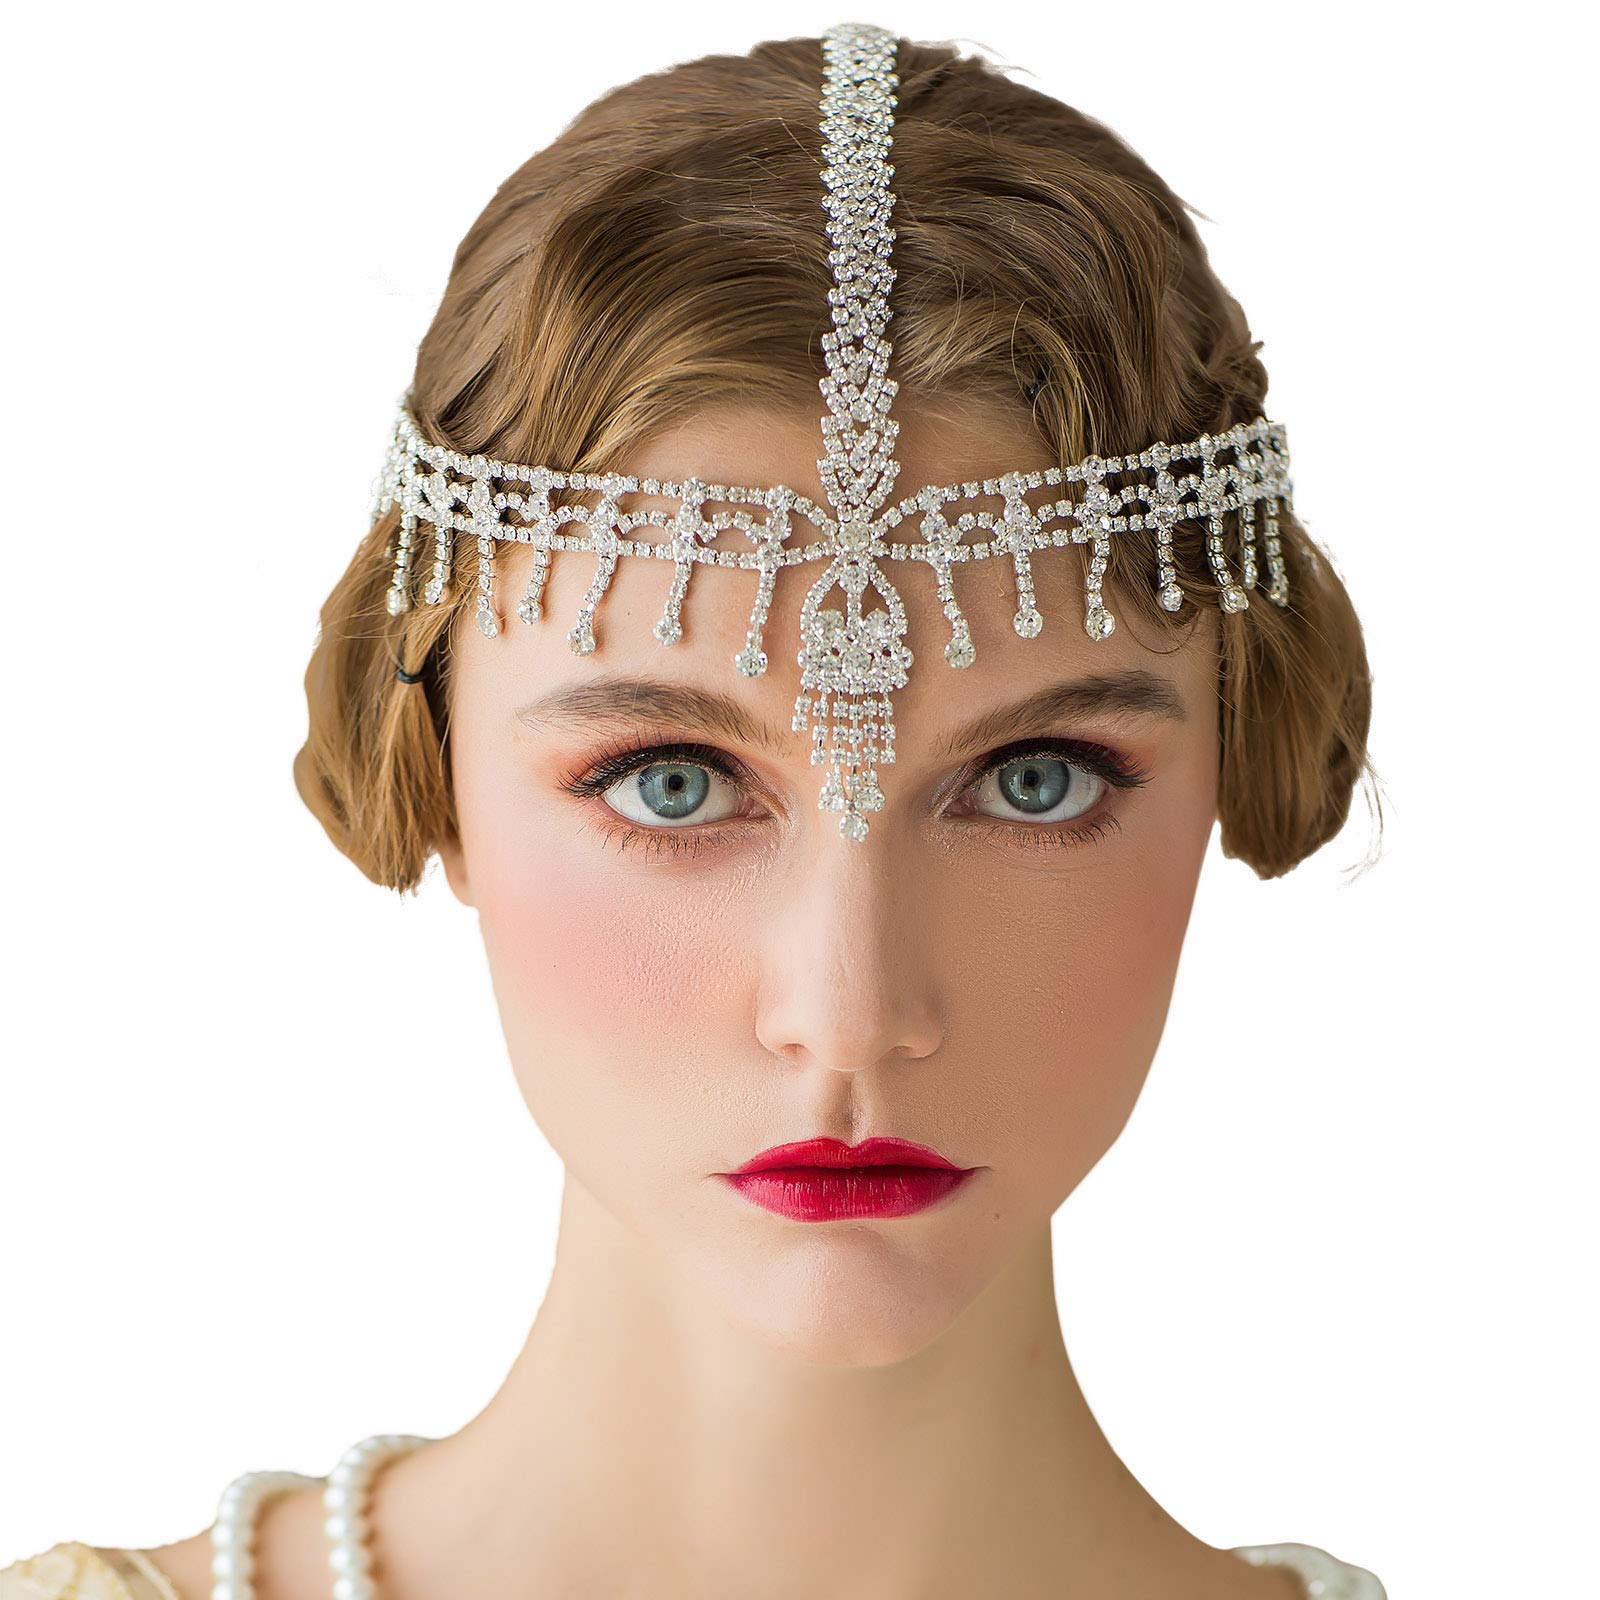 SWEETV The Great Gatsby Headpiece - Rhinestone 1920s Headband Flapper Hair Accessories for Costume Party by SWEETV